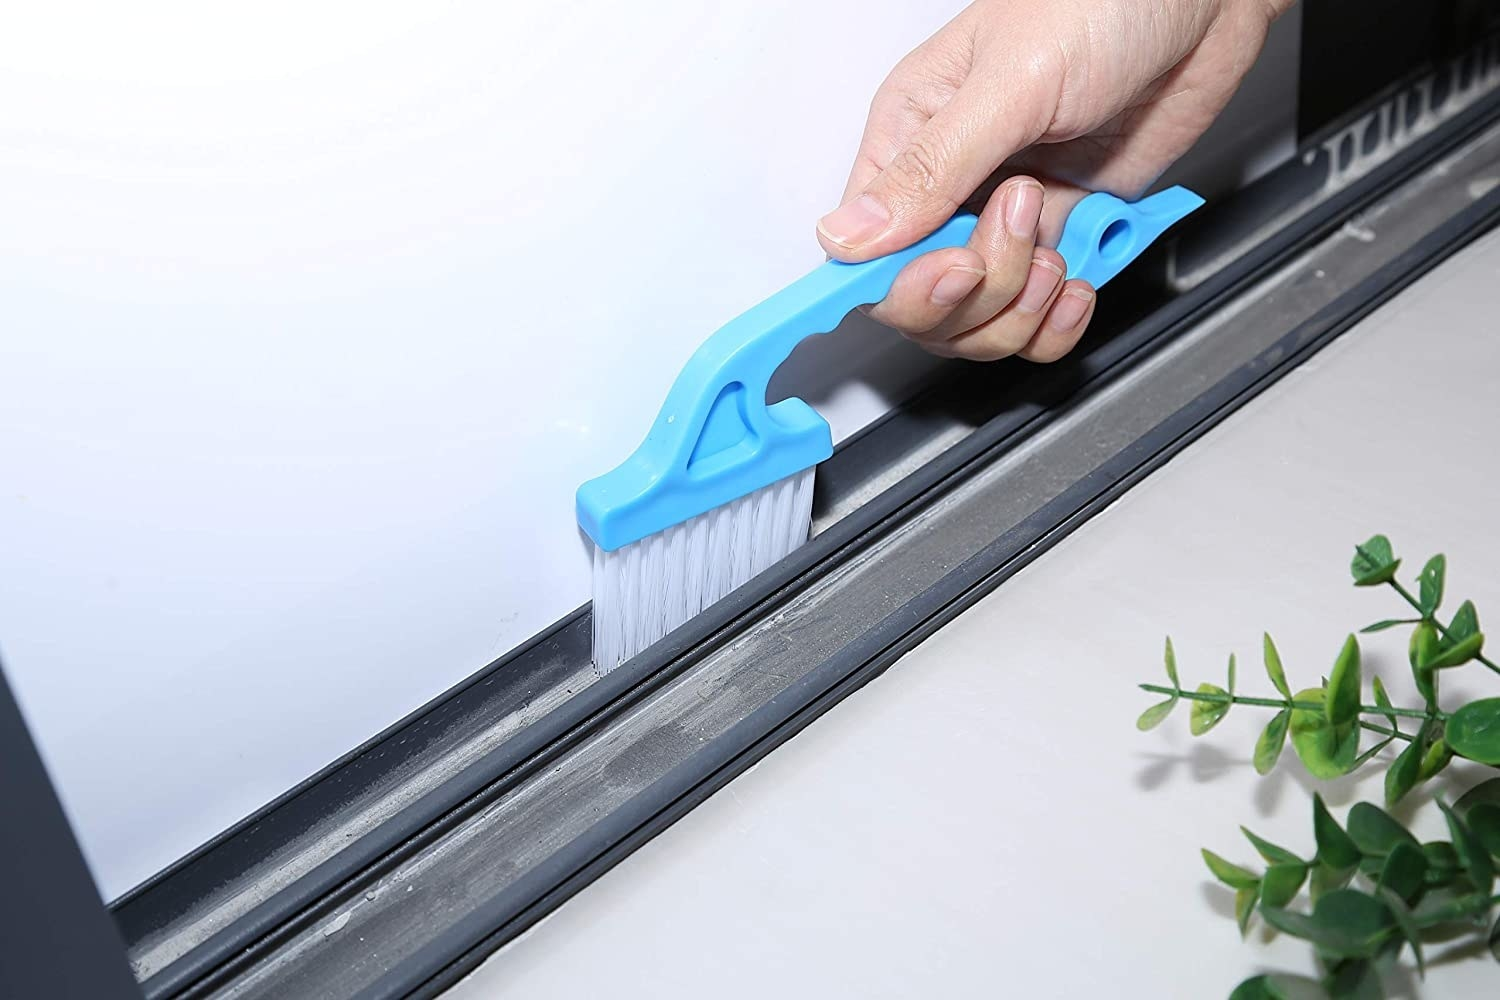 A model using the blue cleaning brush on a window